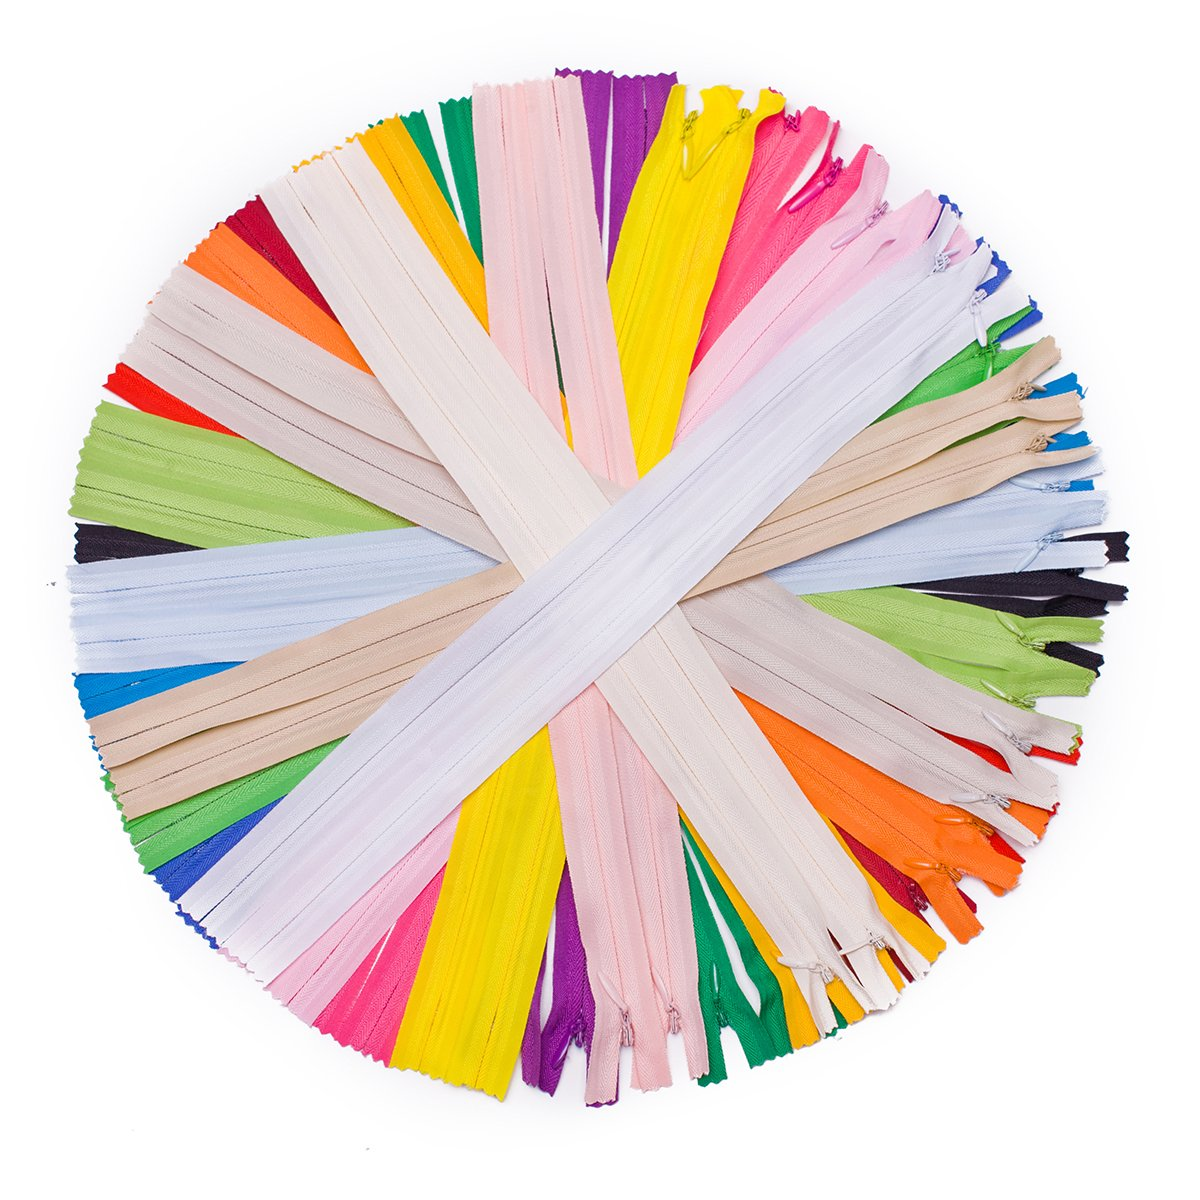 JIUZHU 40 Pieces 22 Inch Nylon Invisible Zippers Bulk for Sewing Crafts (20 Colors)